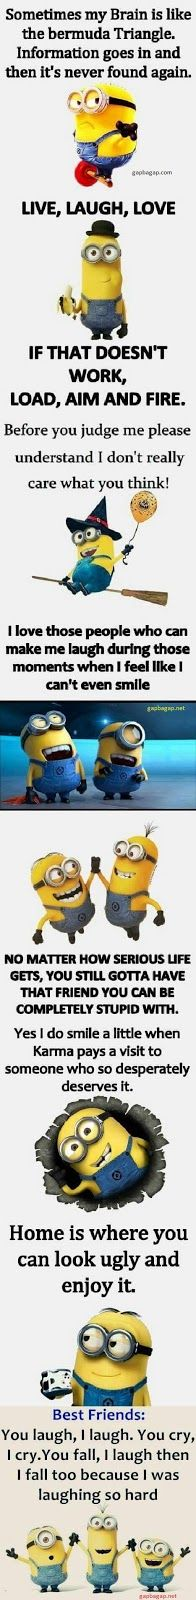 Top 8 #Funny #Minion #Quotes